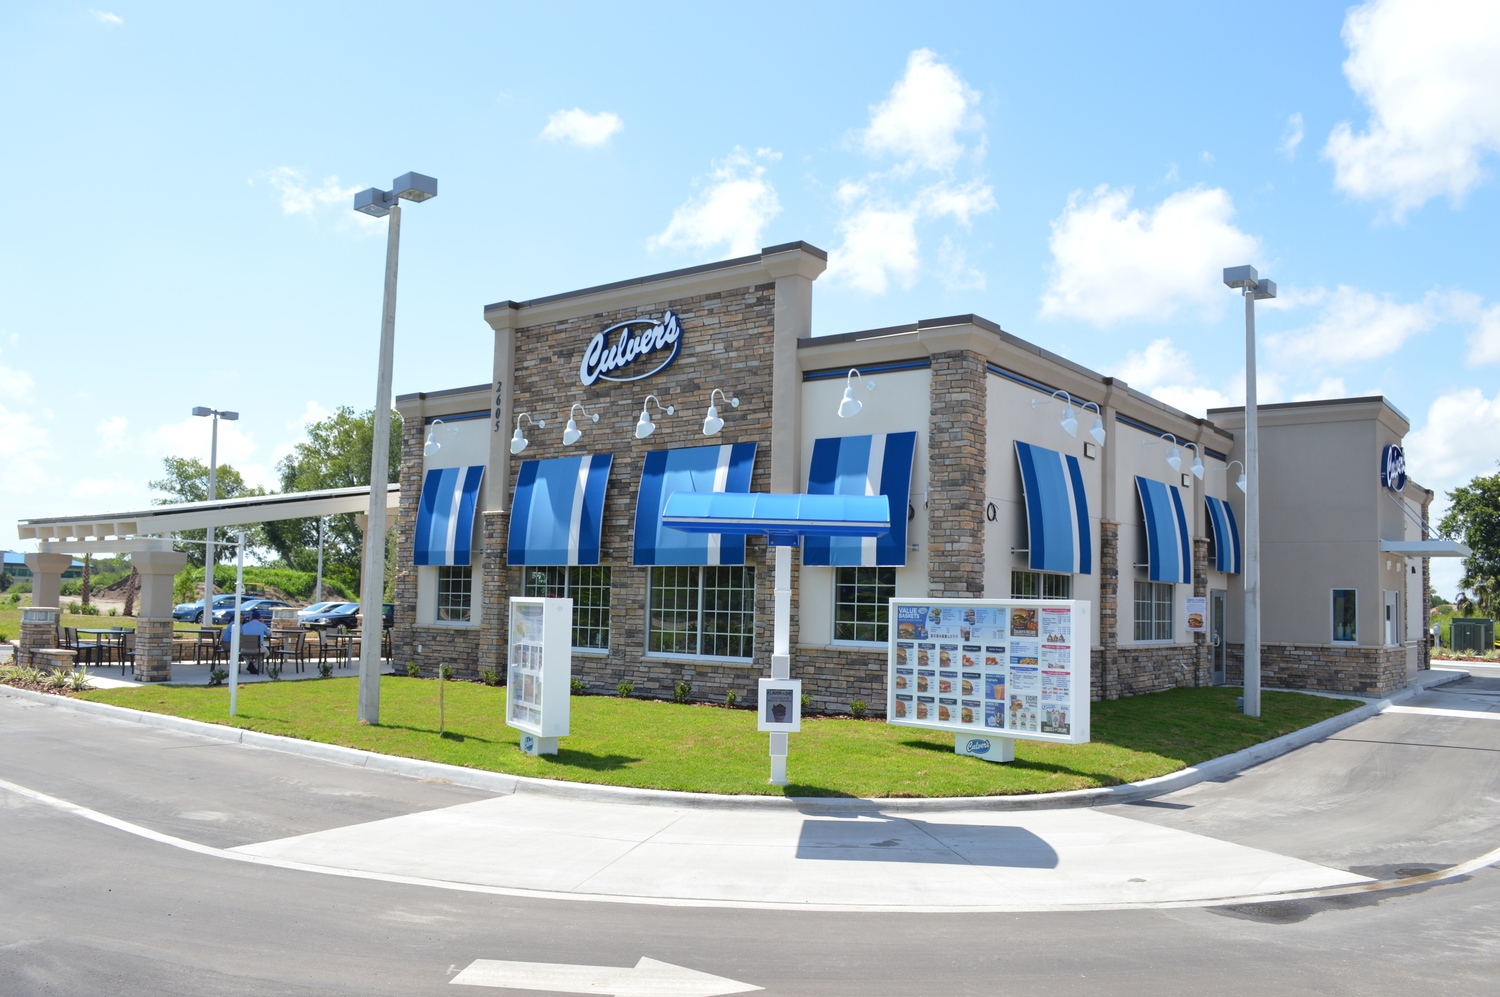 Nnn On 2017 >> Net Lease Culvers Property Profile and Cap Rates - The Boulder Group